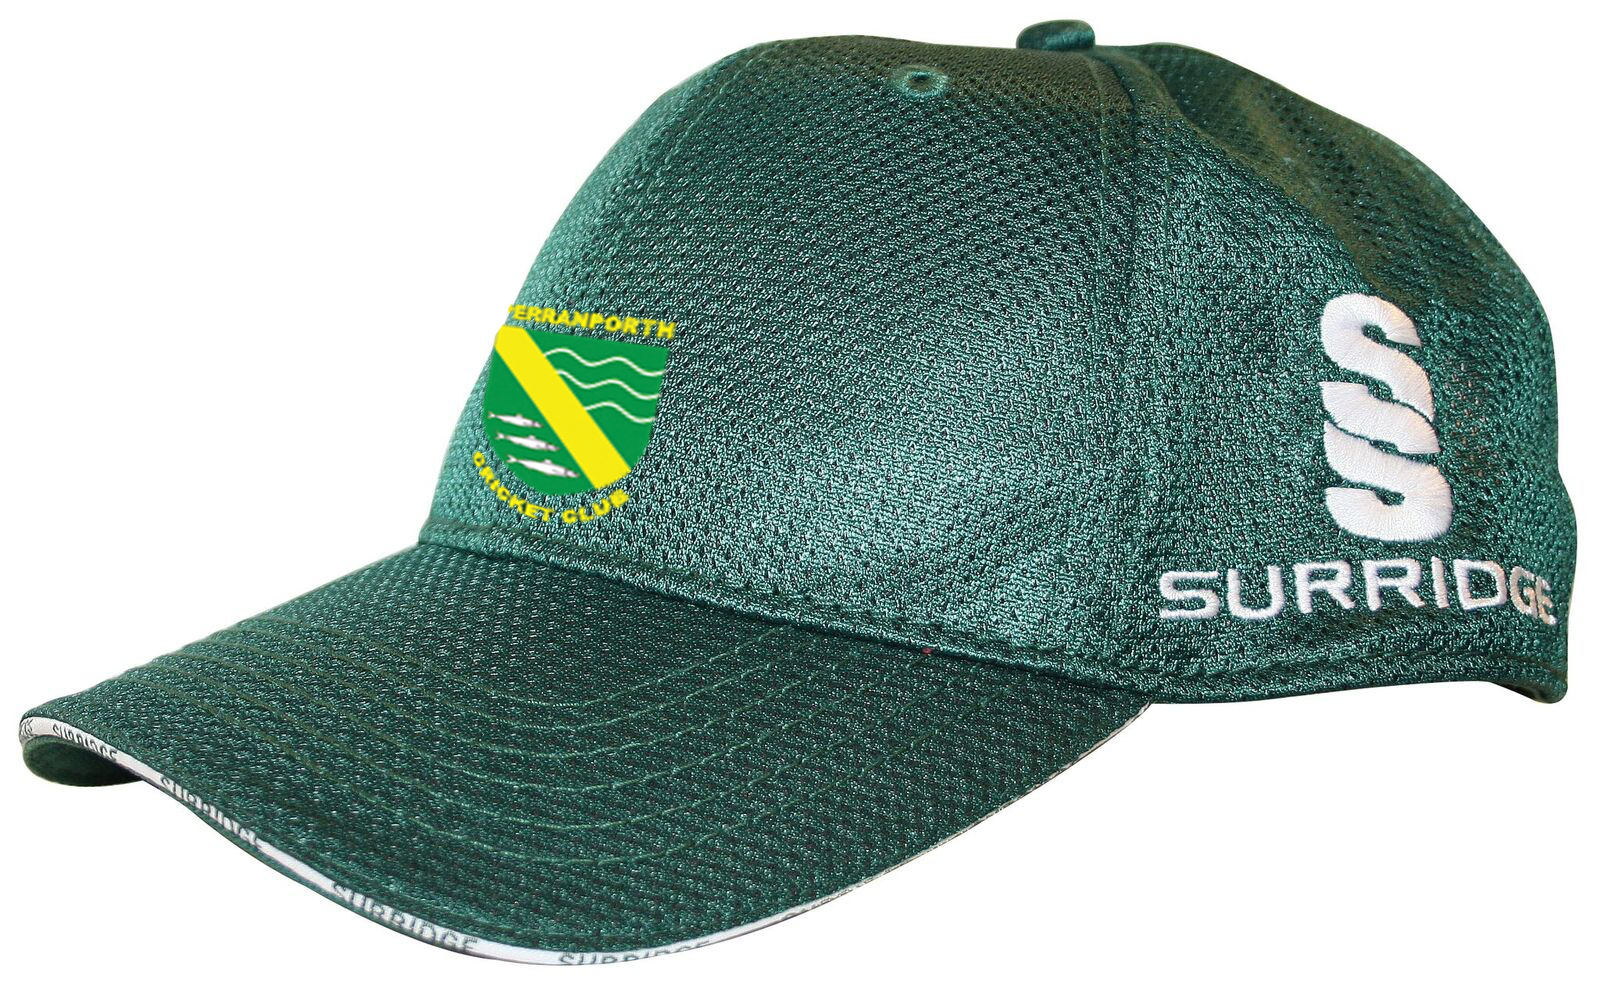 Perranporth CC Adult Cap